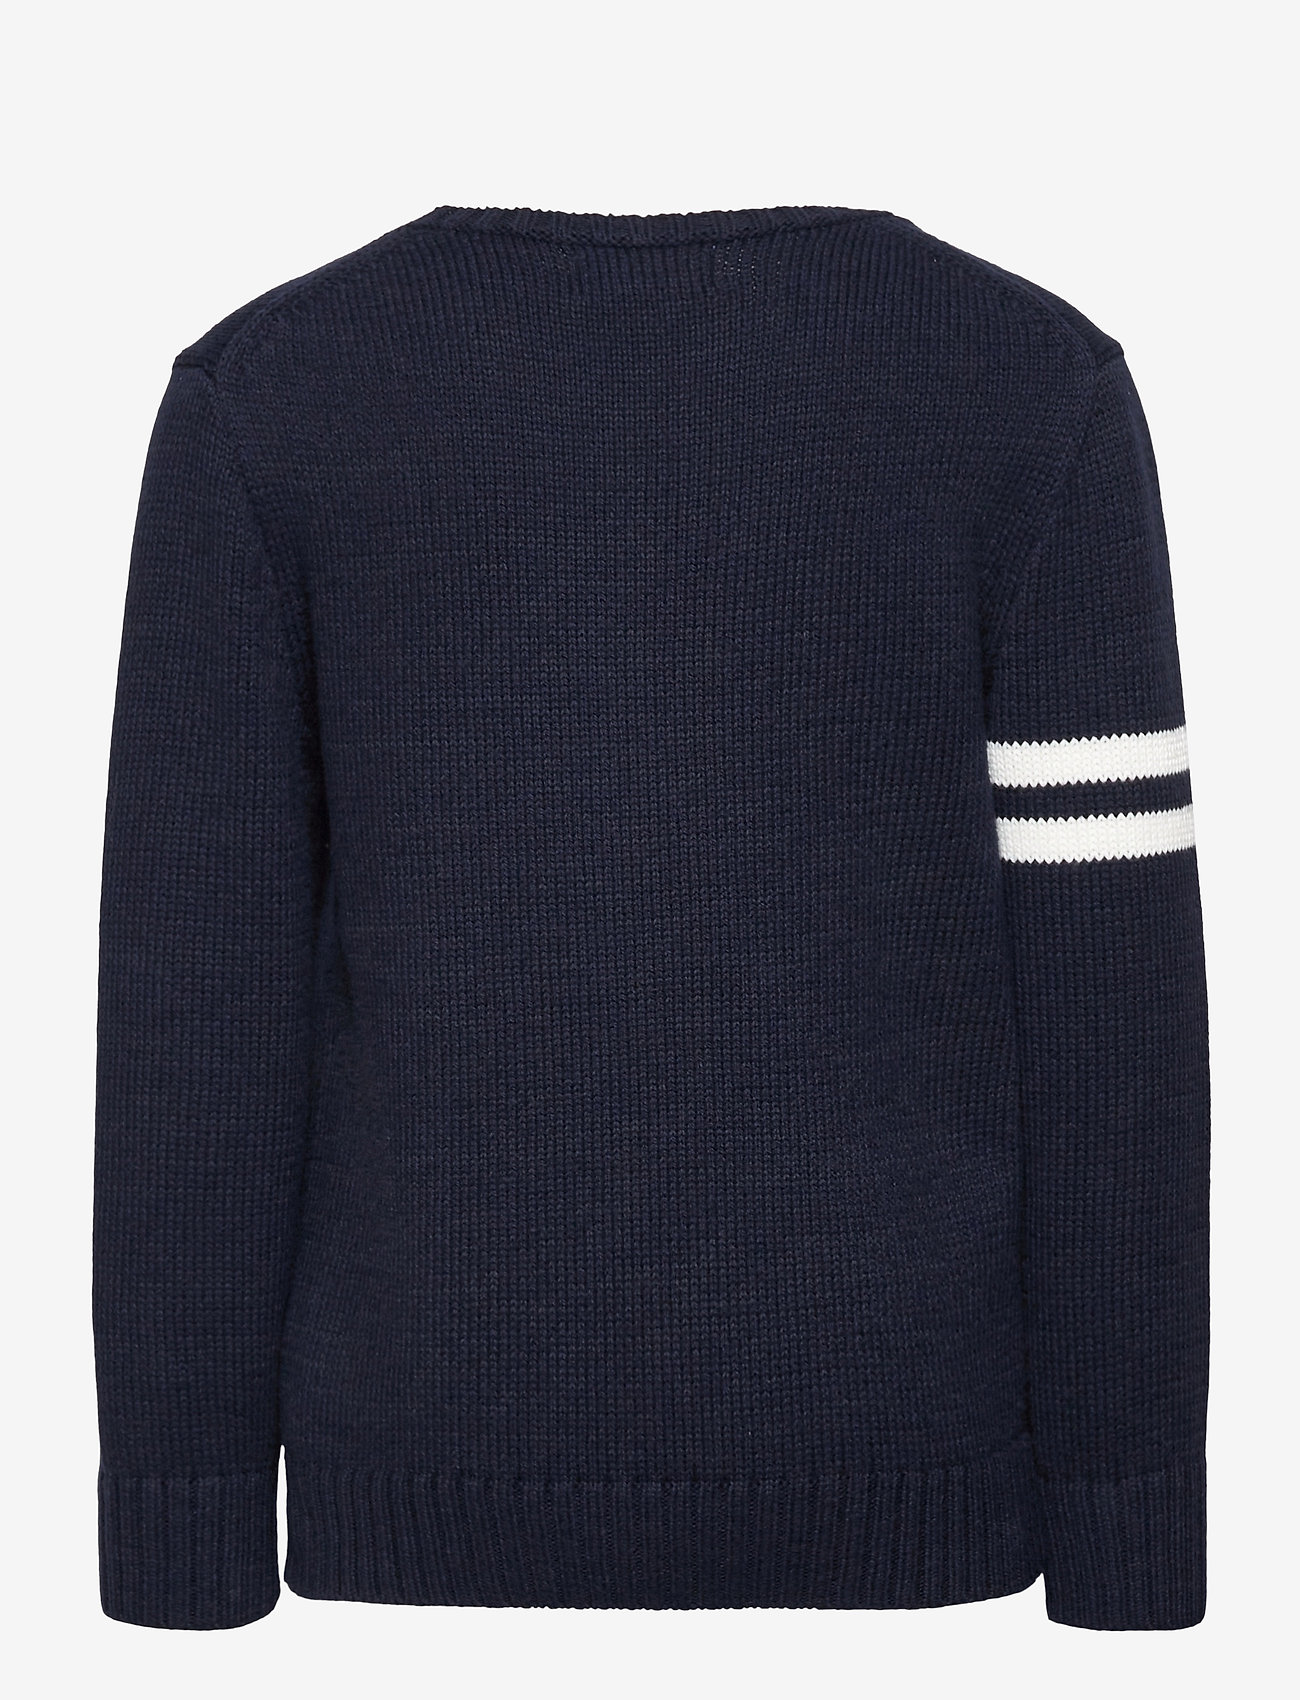 Ralph Lauren Kids - COTTON-LS CN-TP-SWT - knitwear - rl navy - 1